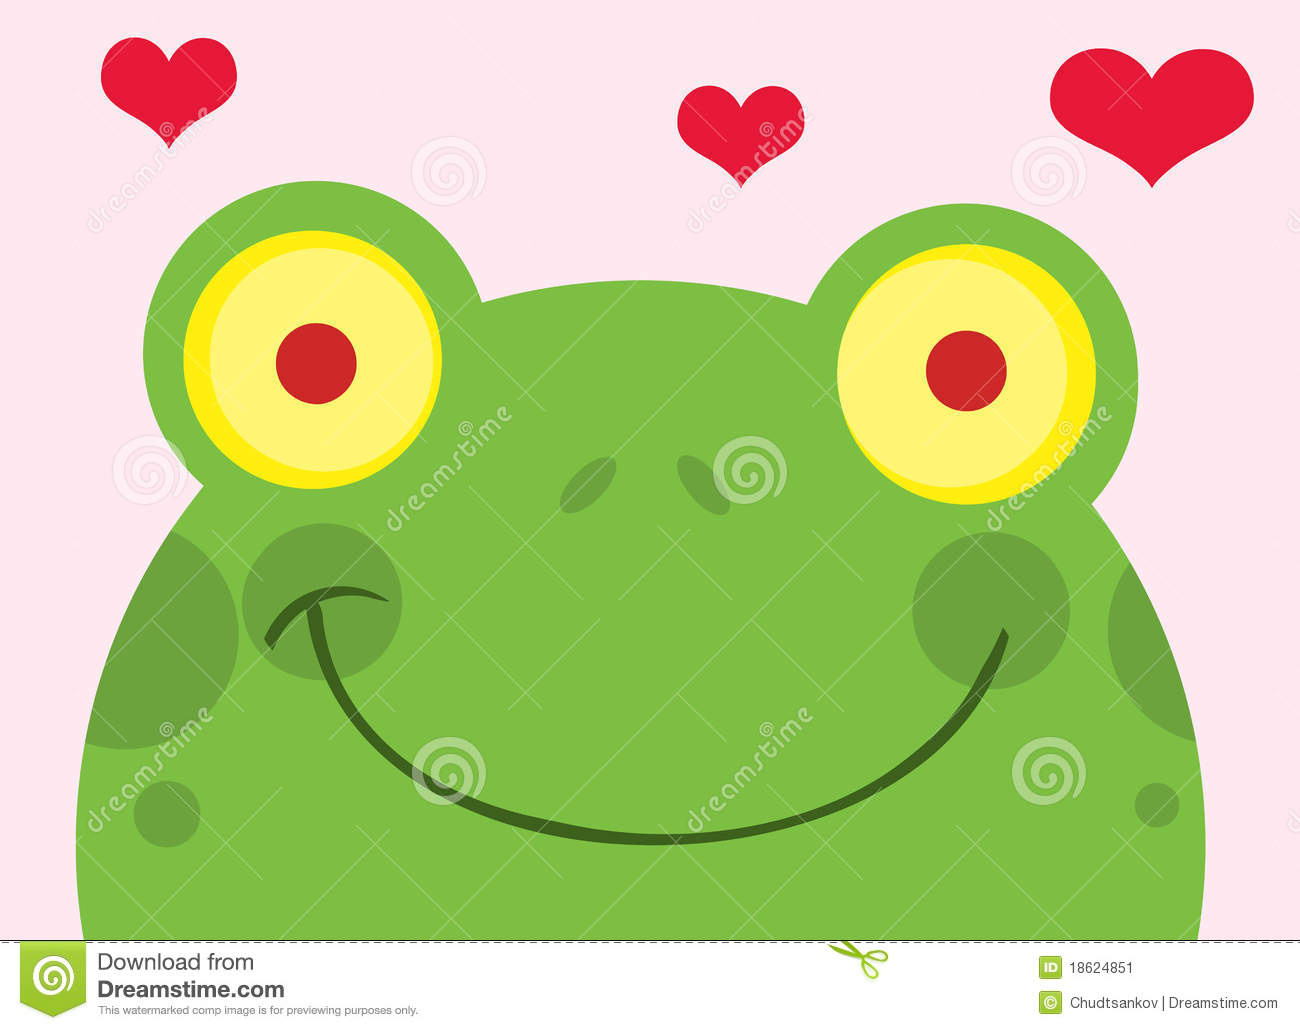 Heart stock illustration royalty free illustrations stock clip art - Royalty Free Stock Photo Face Frog Hearts Images